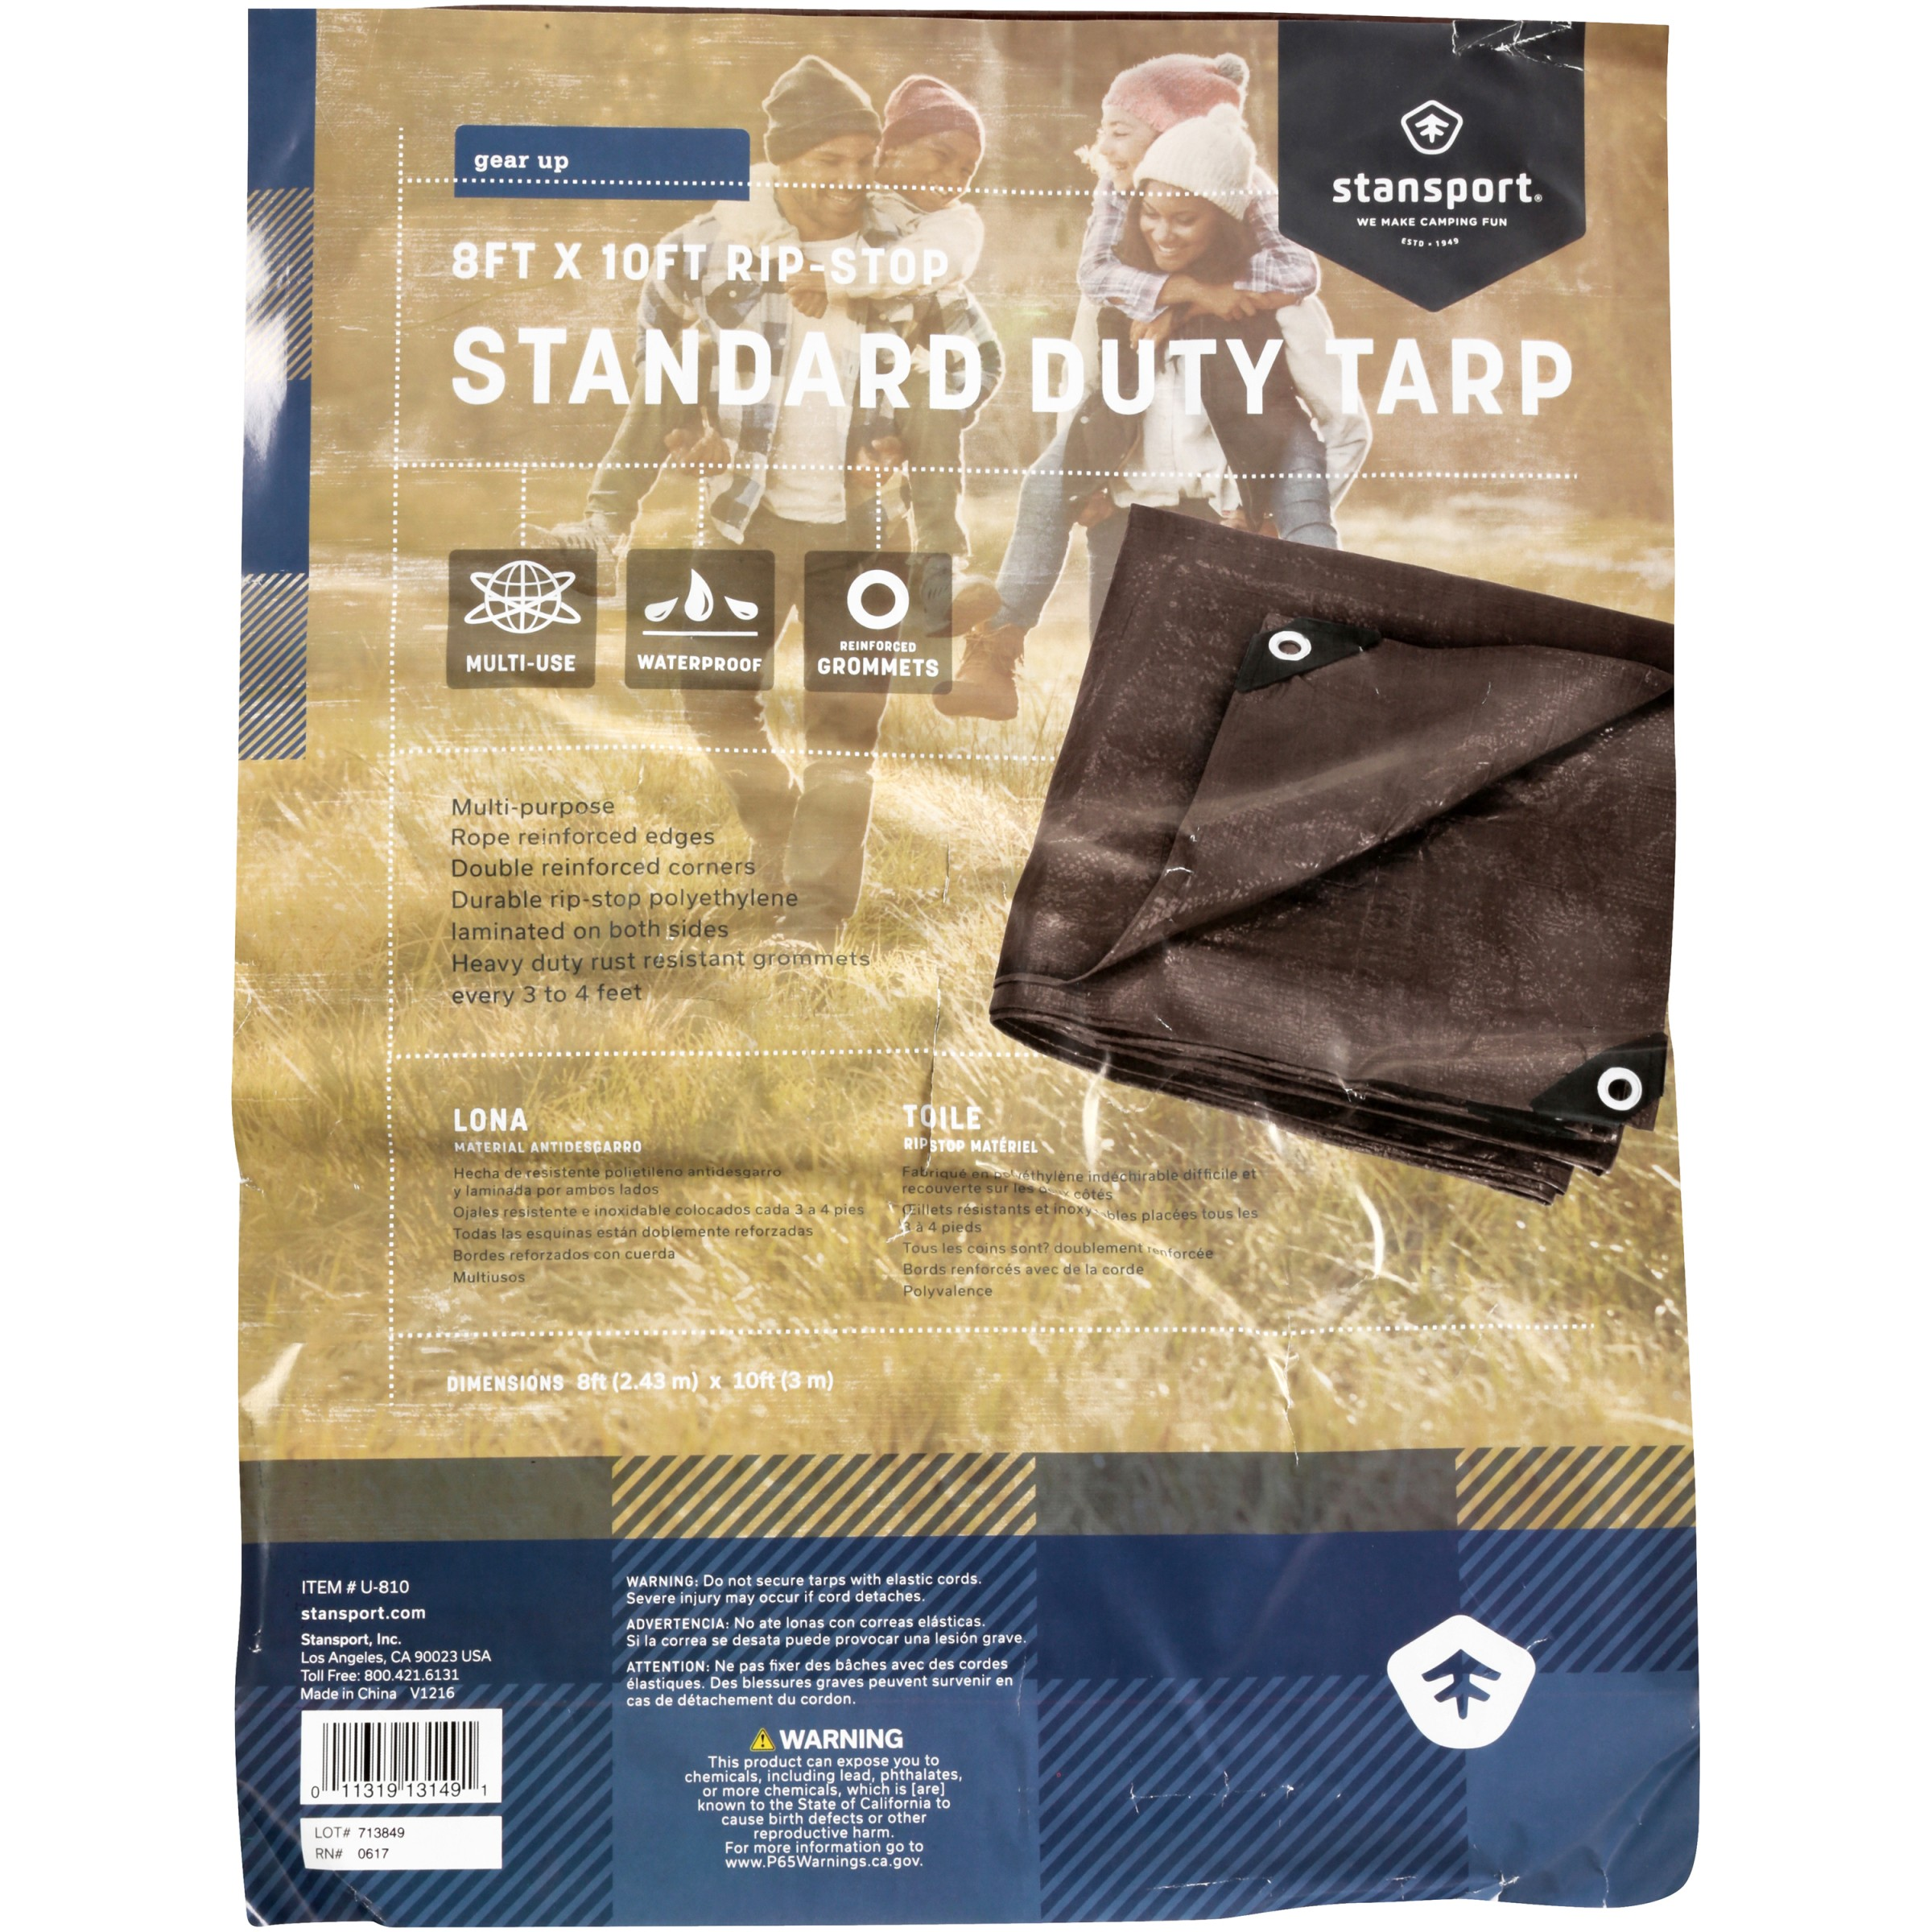 Stansport U-810 Rip Stop Tarp - 8 Ft X 10 Ft - Brown - Standard Duty